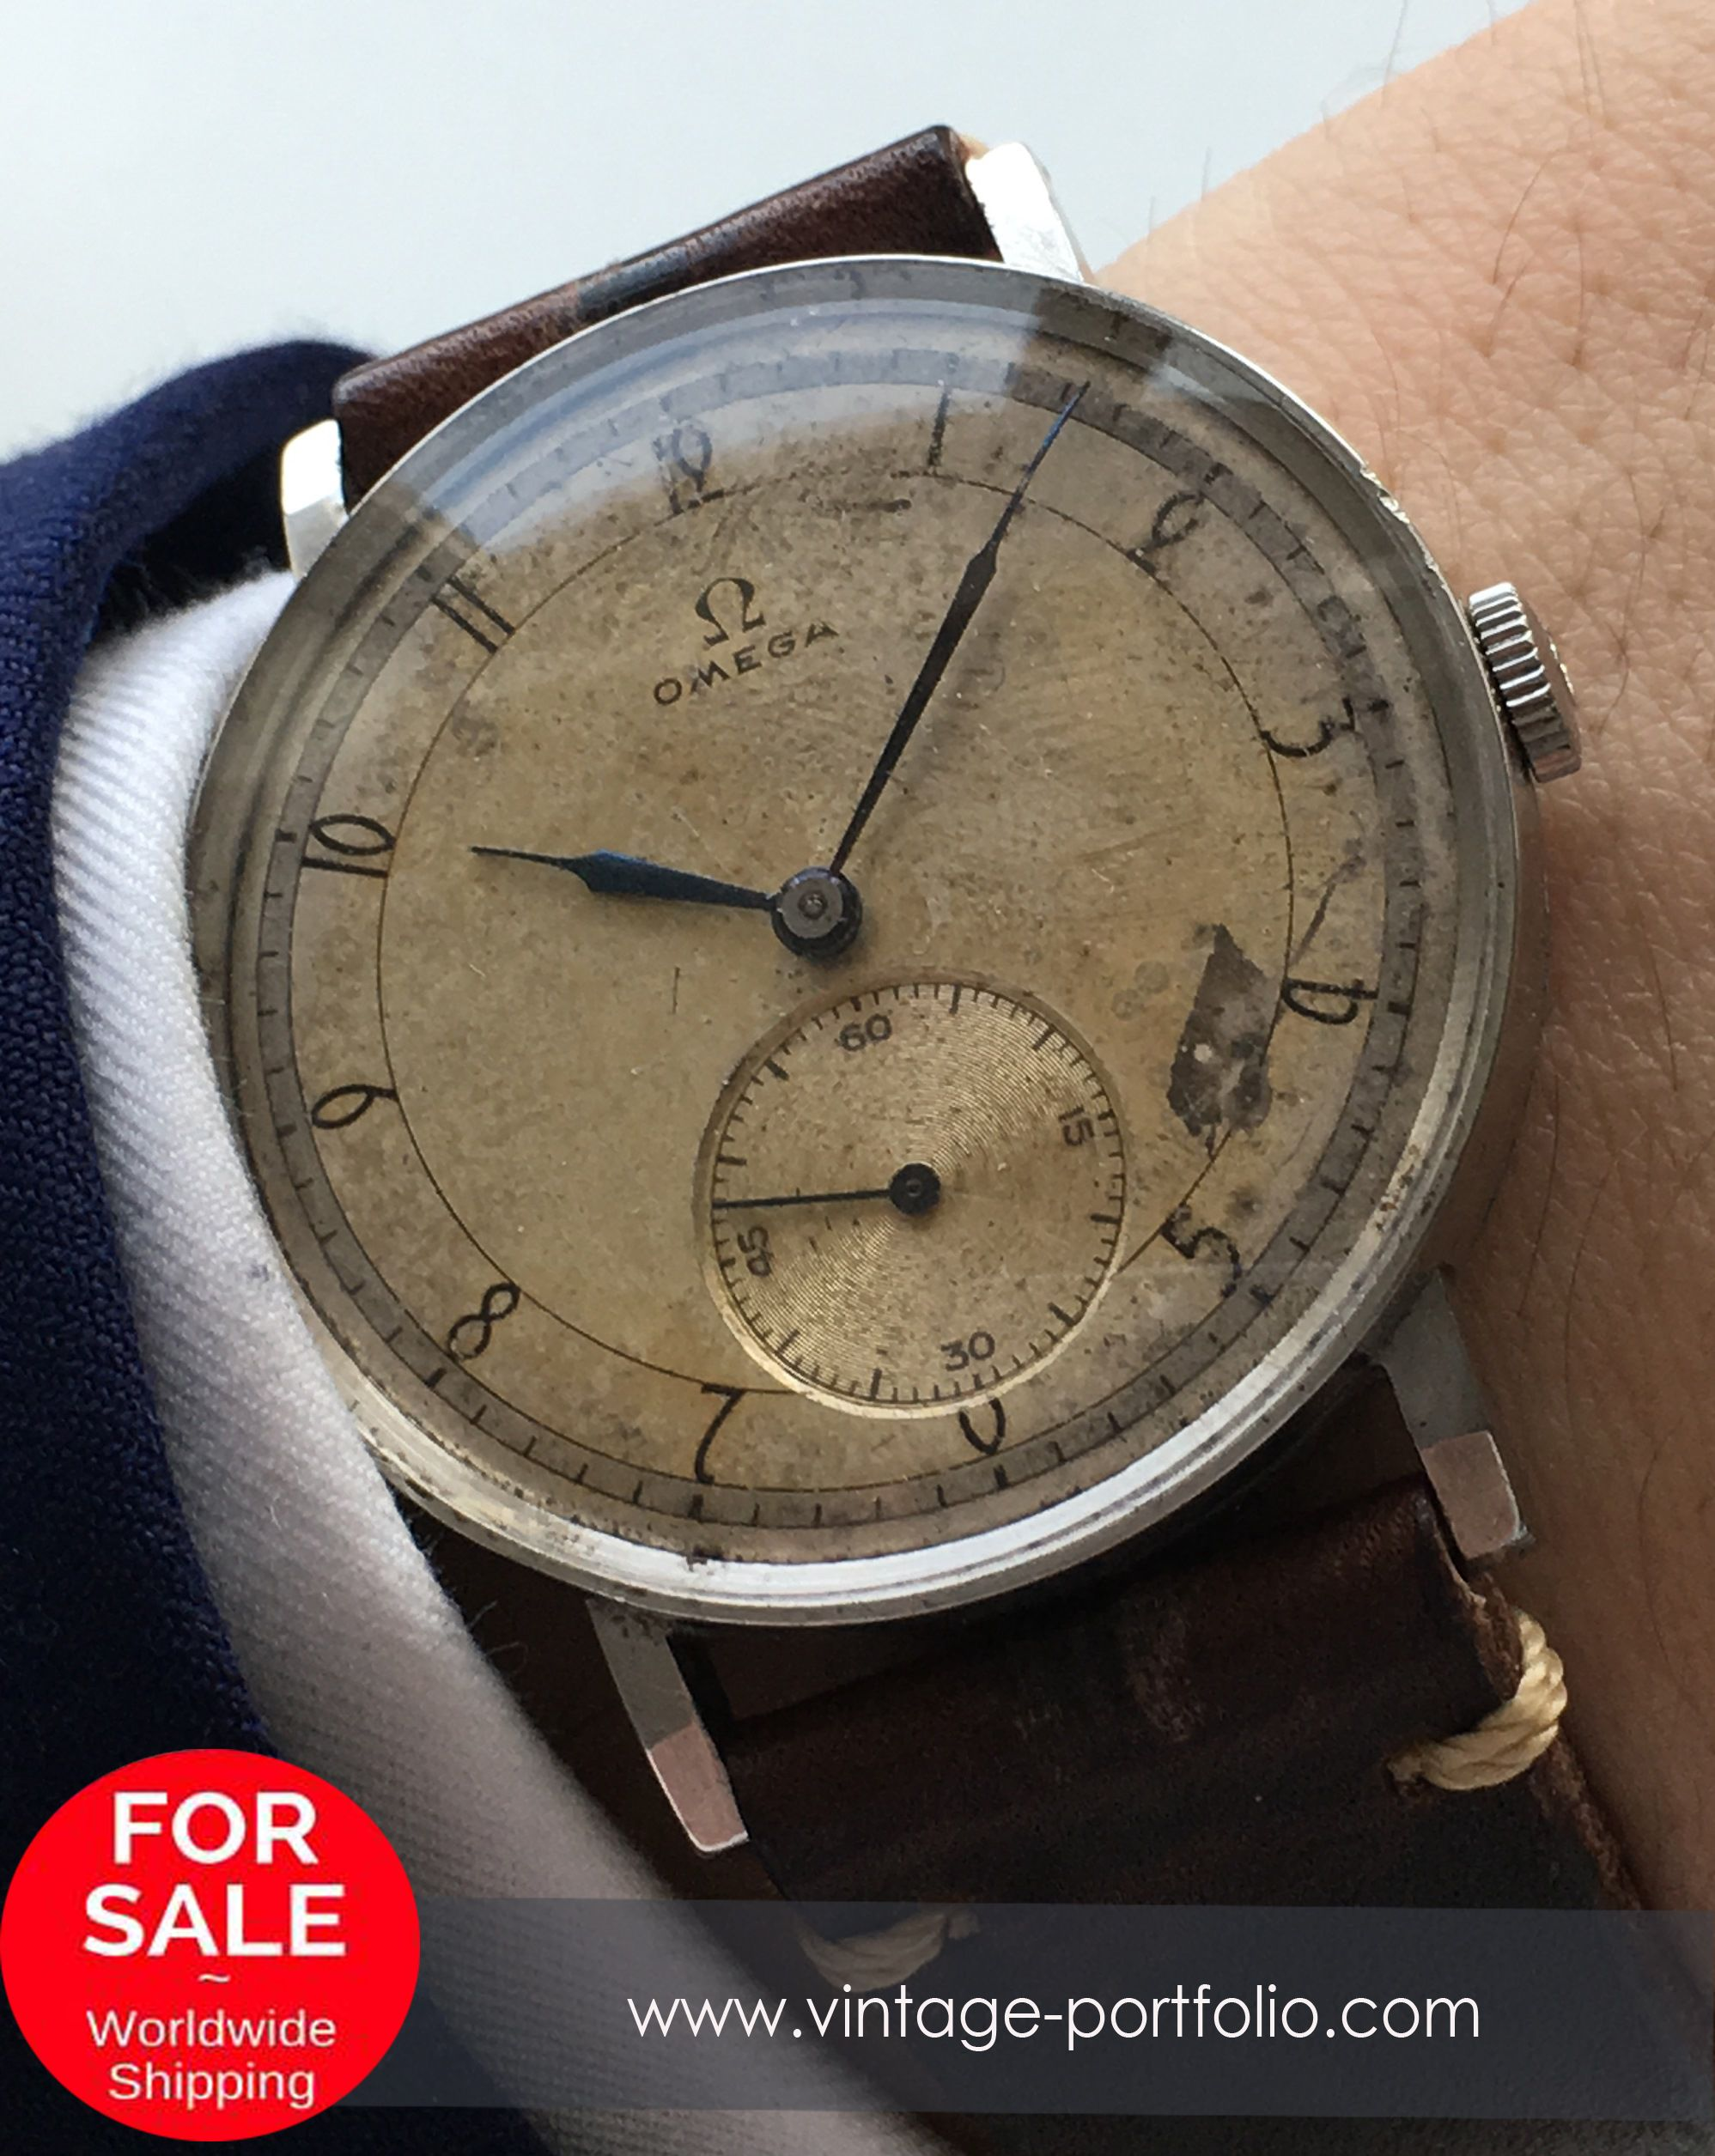 Superrare 38mm Omega Oversize Jumbo watch from 1944 (ww2, wk2) Vintage #omegawatches #omegavintage #rarewatches